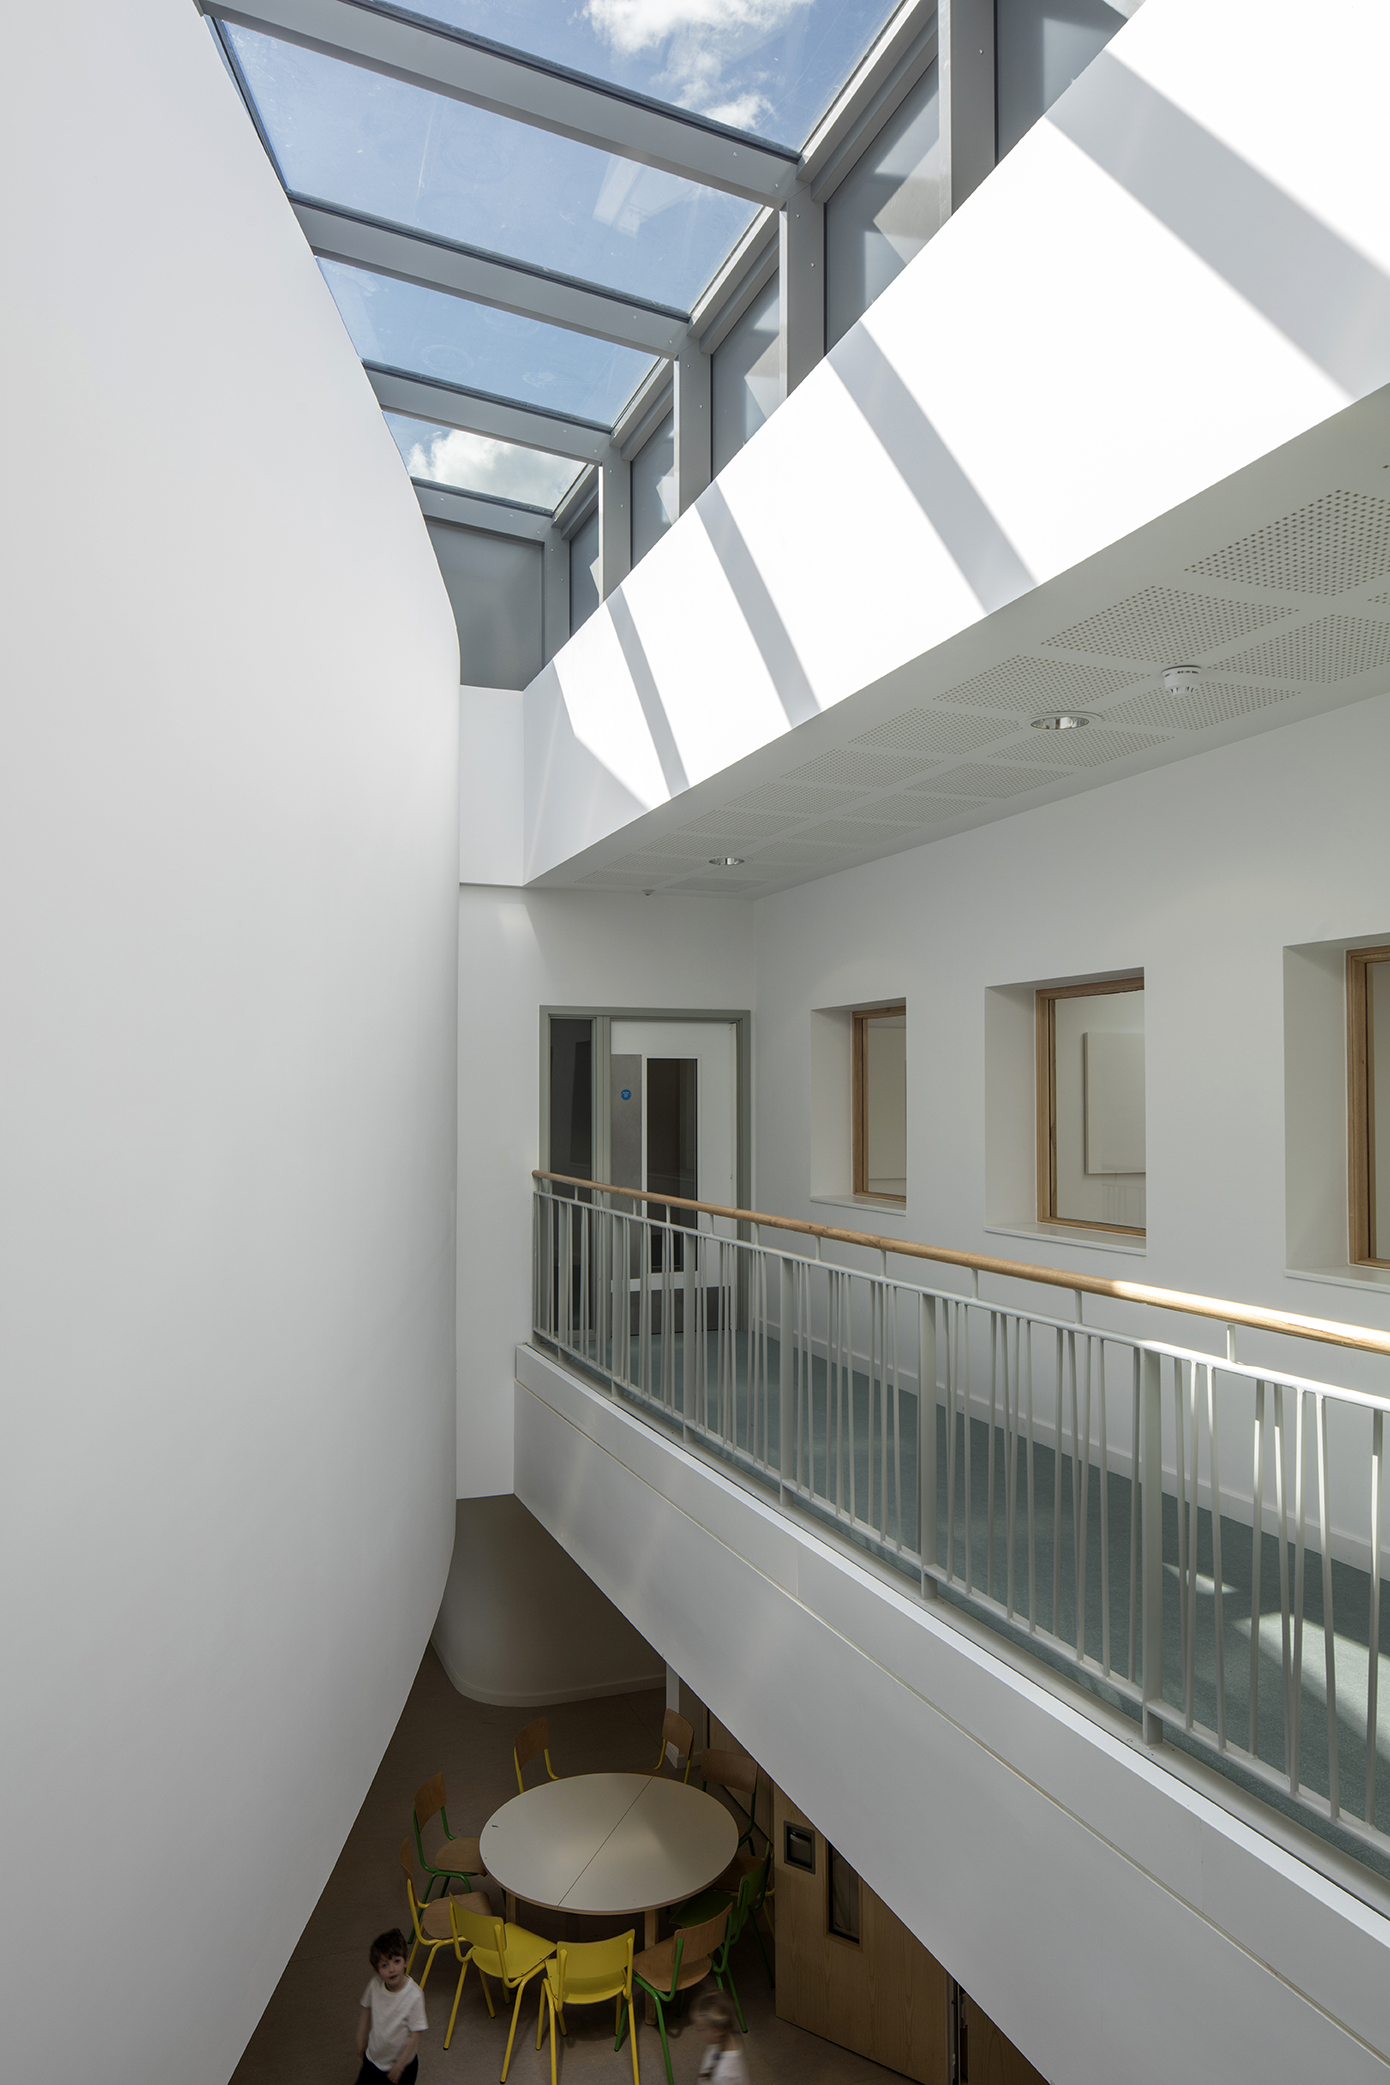 void - University of Cambridge Primary School by Marks Barfield Architects